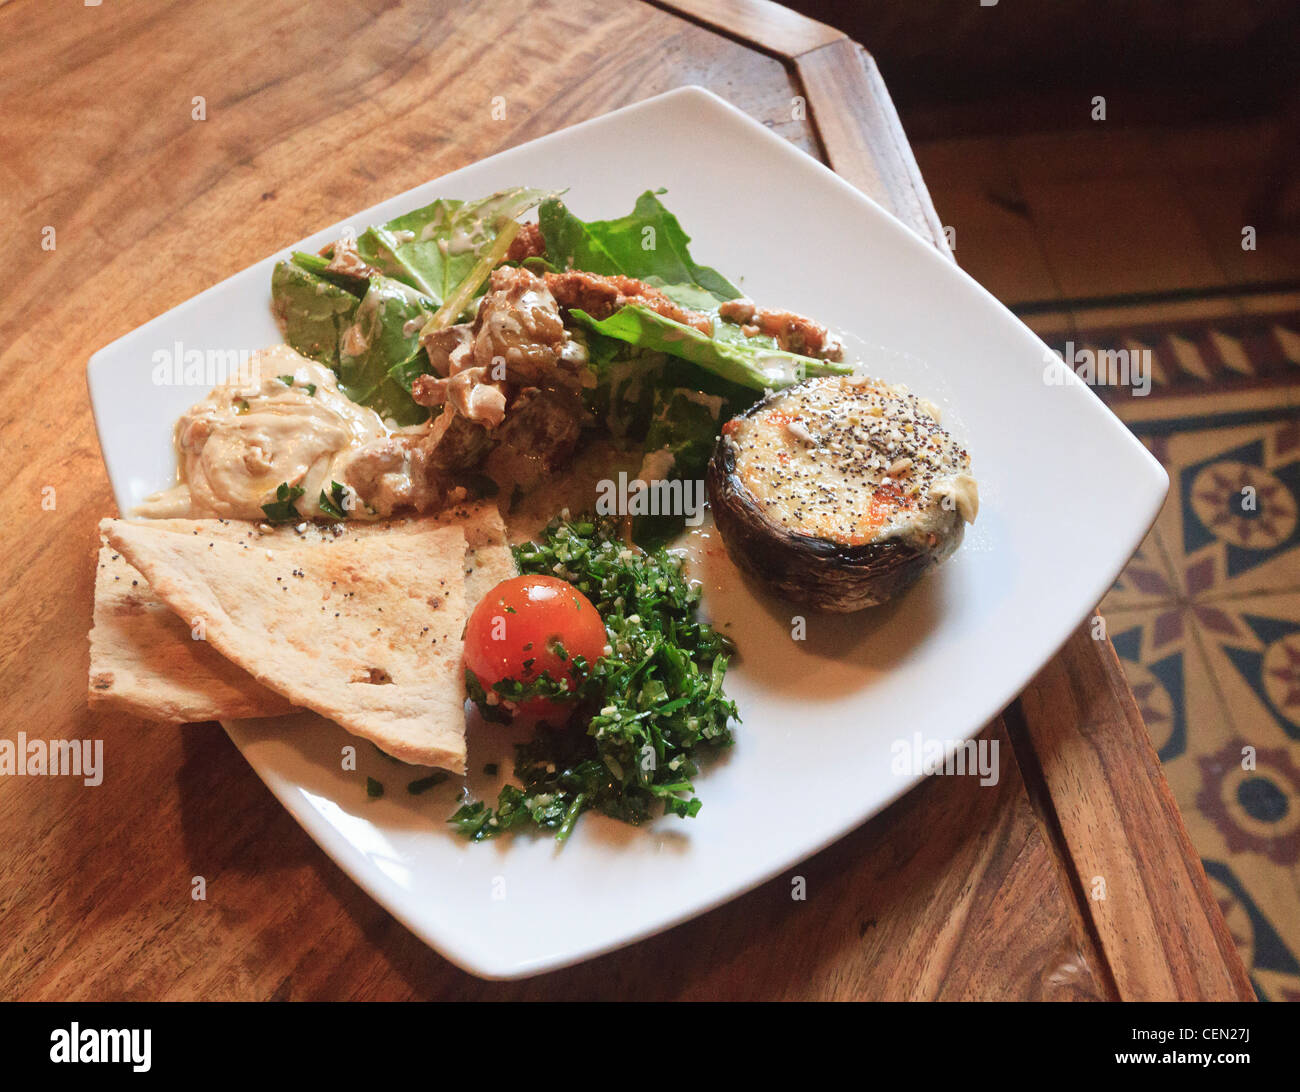 Middle Eastern Foods Stock Photos & Middle Eastern Foods